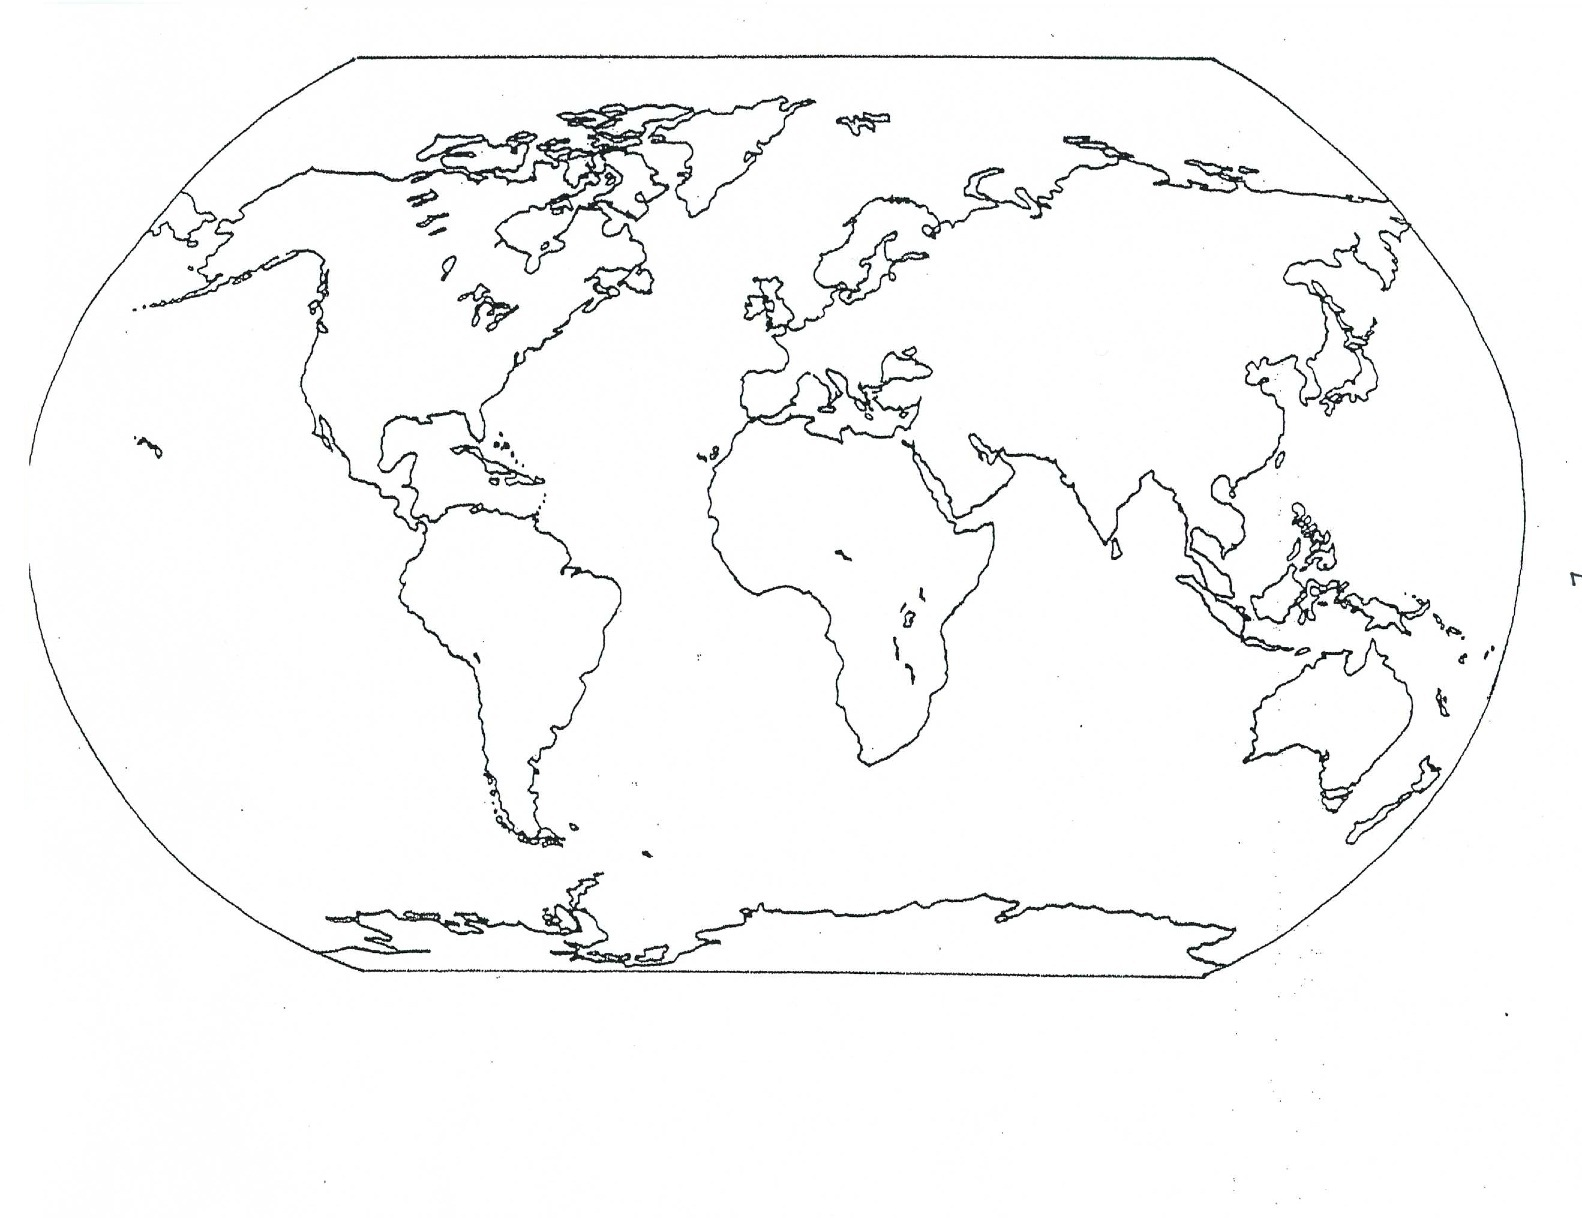 World map drawing for kids at getdrawings free for personal 1582x1218 free printable world map coloring pages for kids gumiabroncs